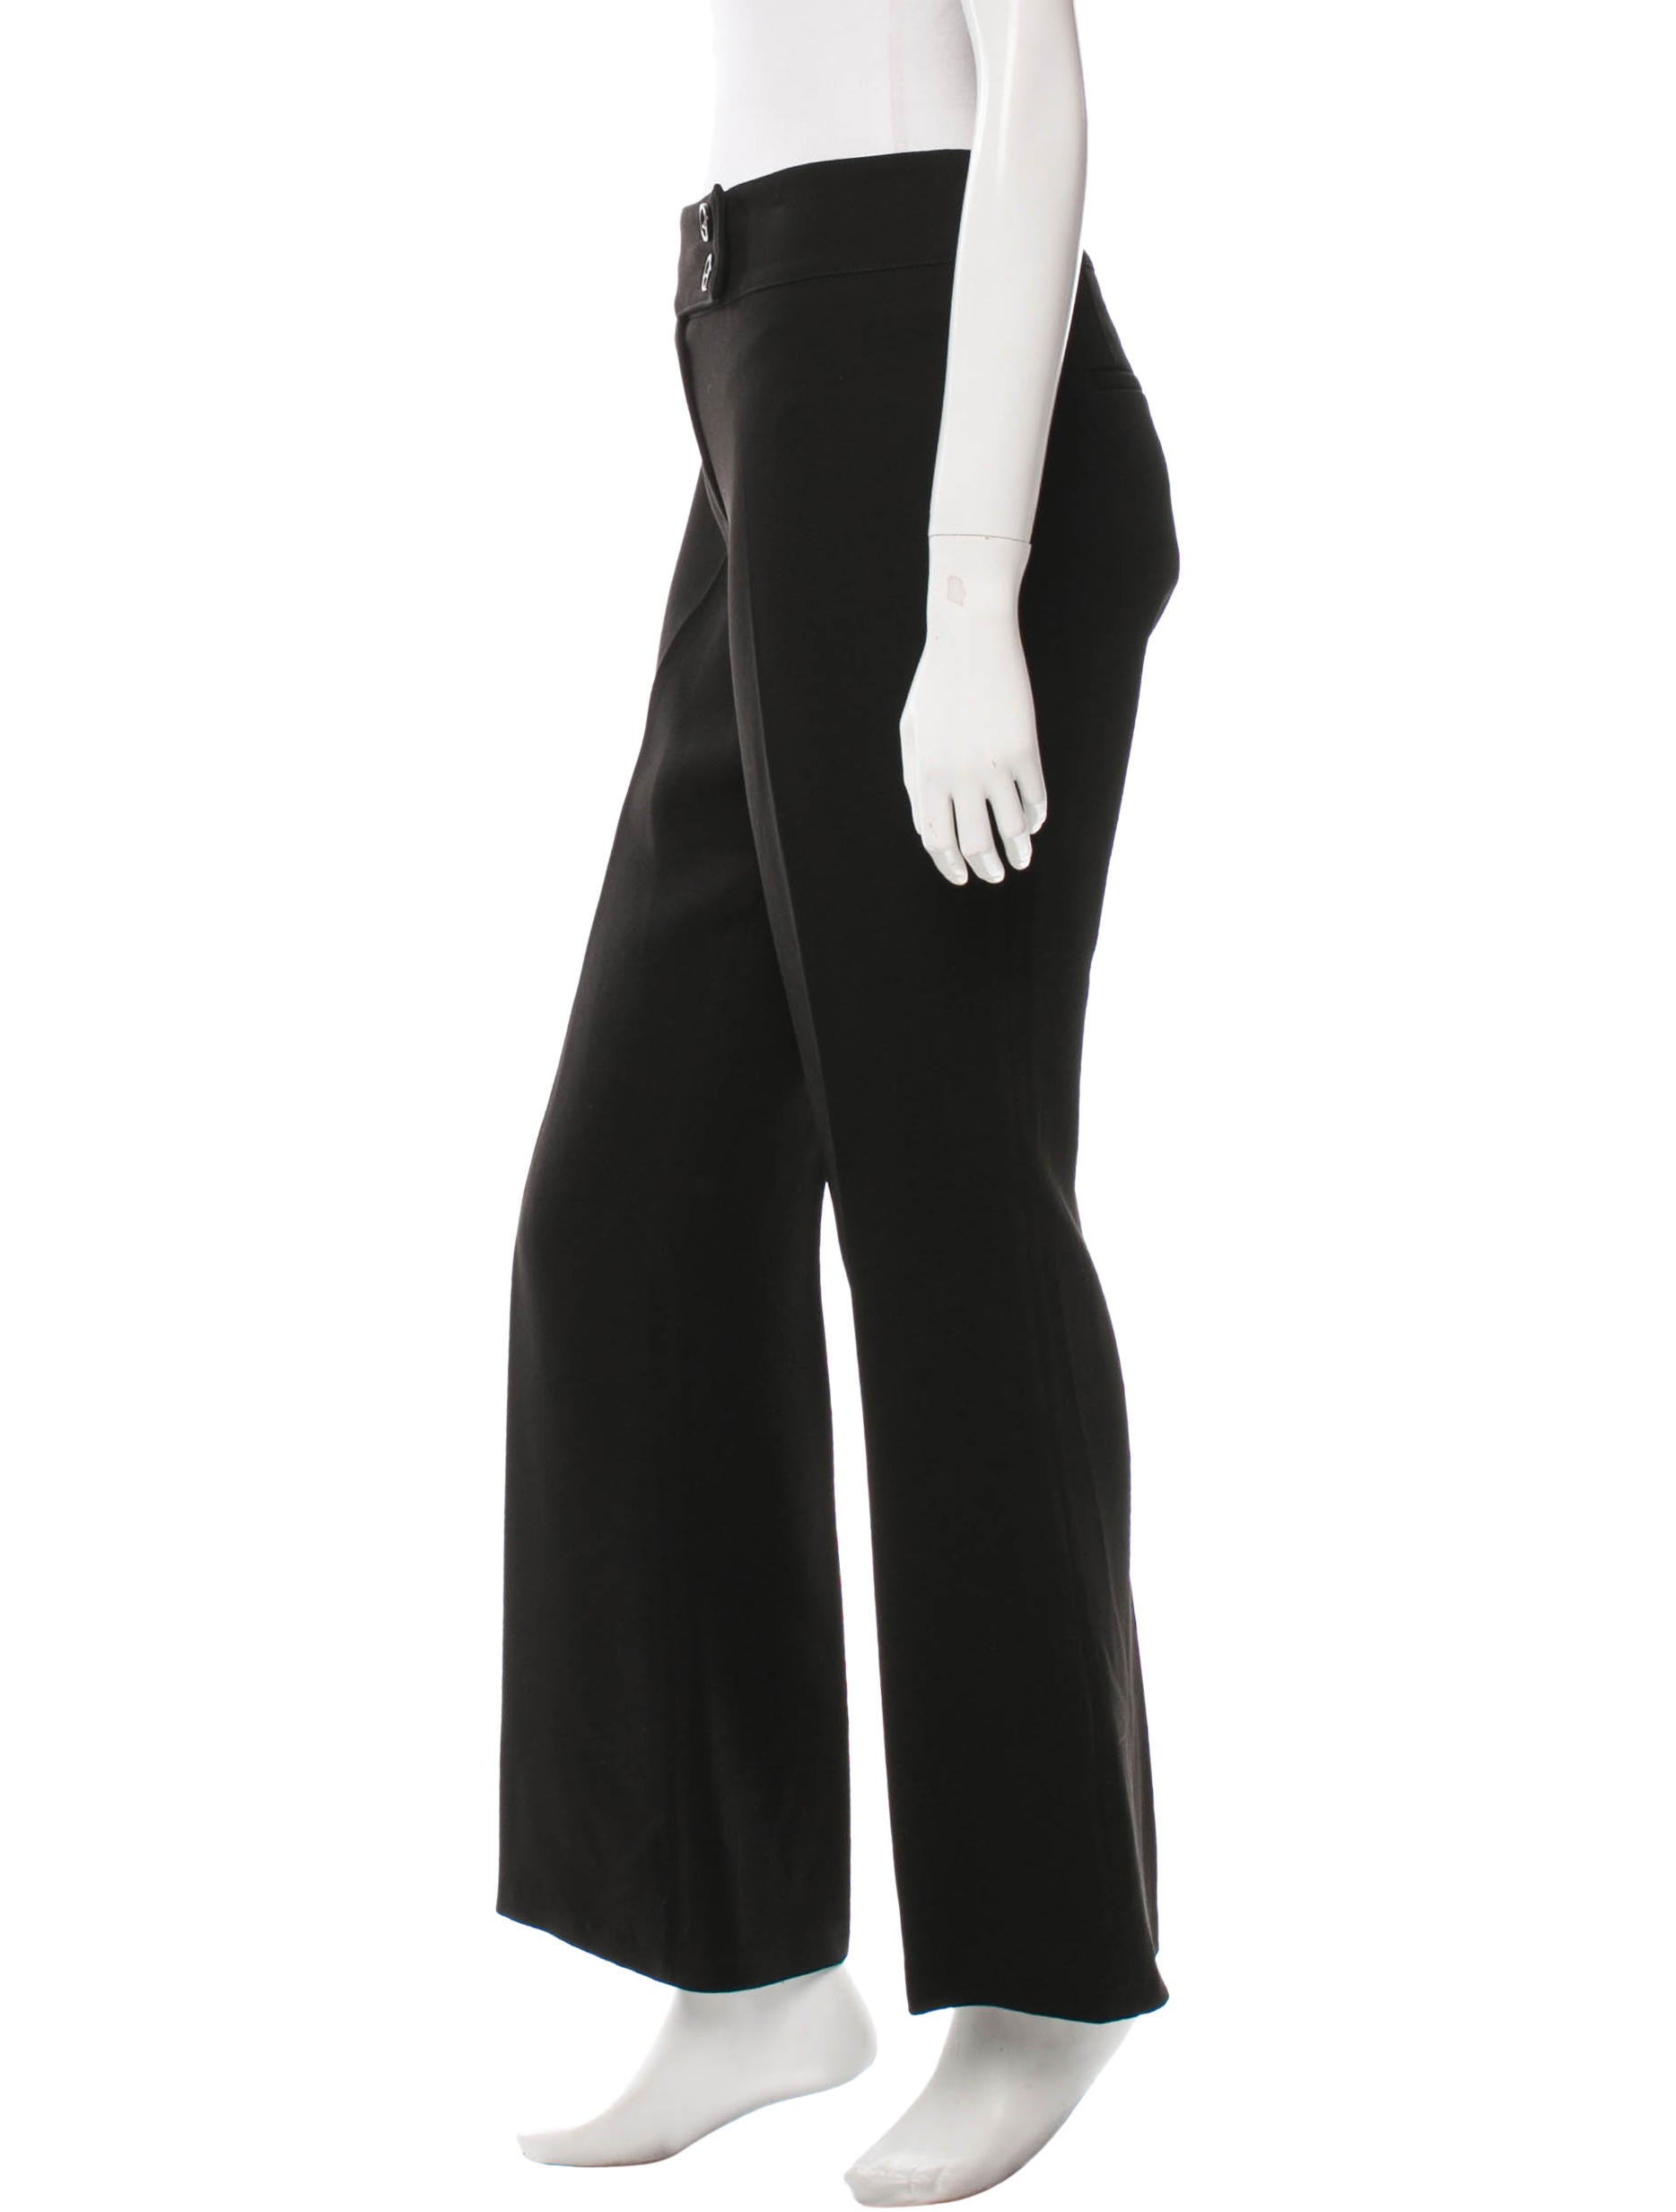 Men's Wide Leg Pants Explore the fantastic collection of men's wide leg pants at Farfetch and put the finishing touches to your off-duty line-up. Discover an incredible array of fashion-forward styles, from men's culottes to flared apron pants for a quirky twist on everyday dressing.